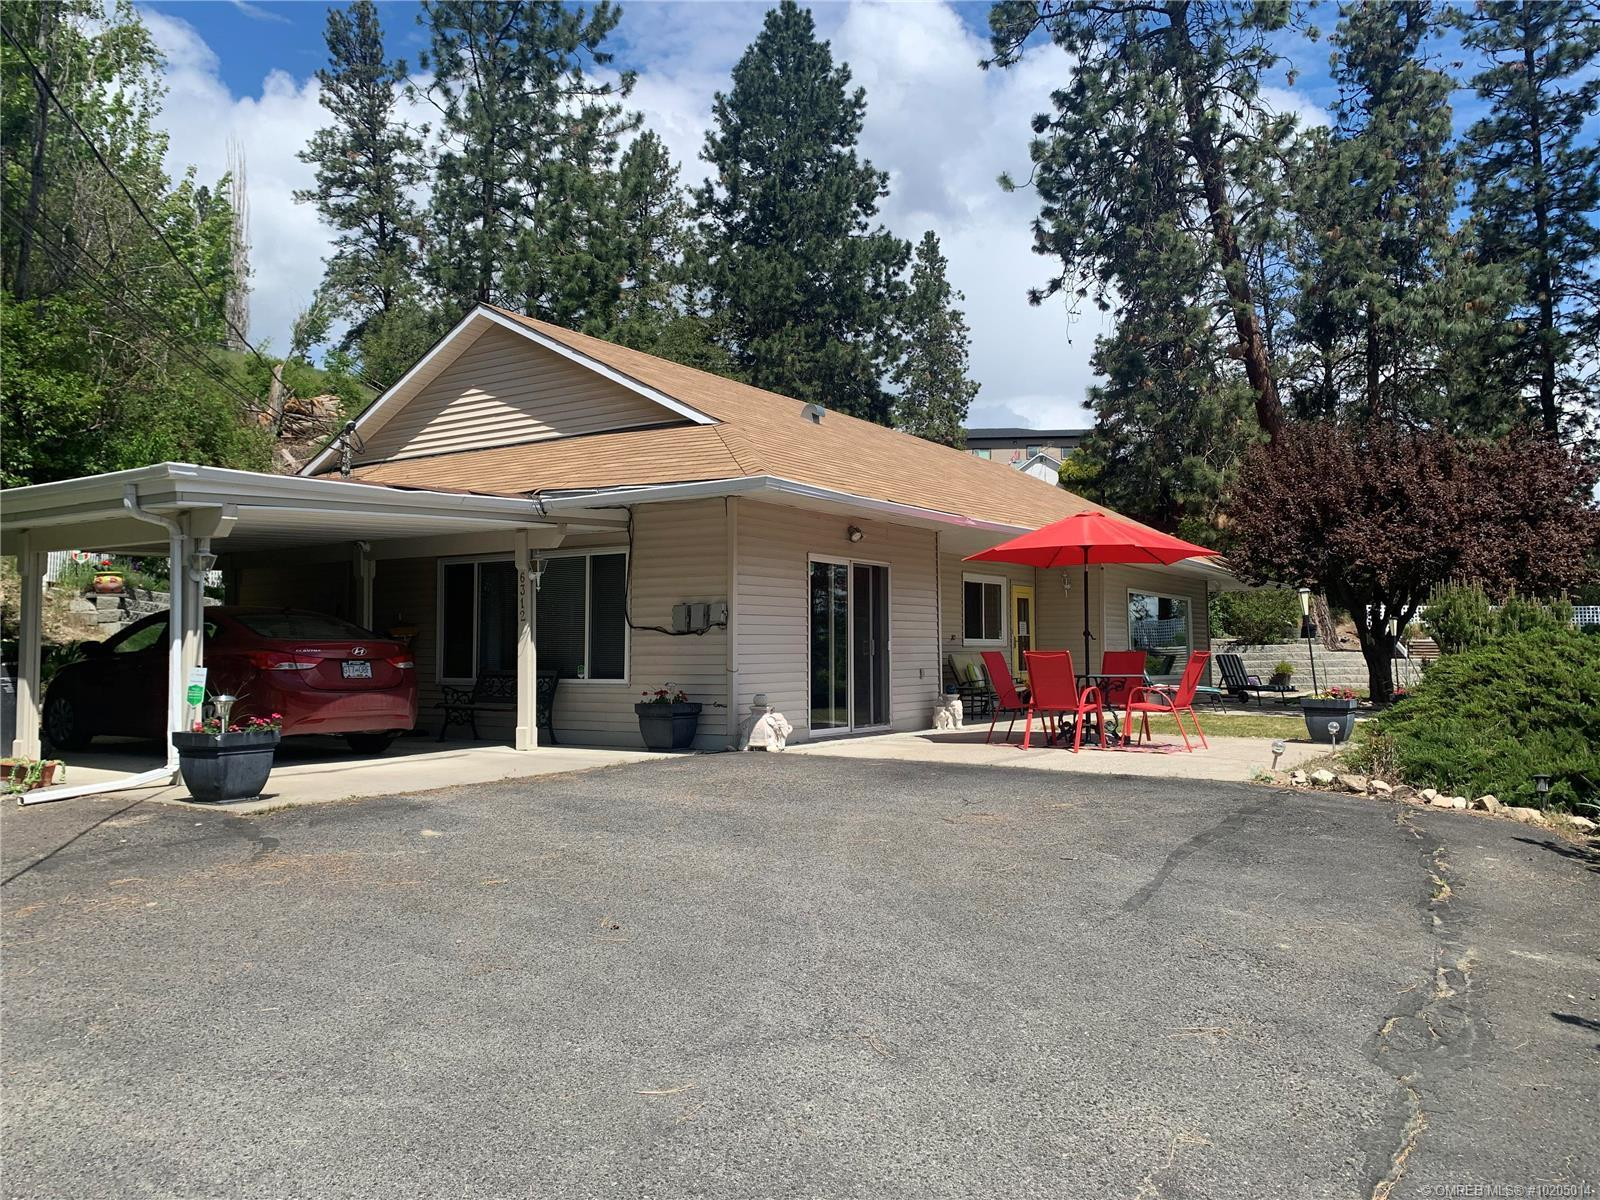 Removed: 6312 Renfrew Road, Peachland, BC - Removed on 2020-05-28 23:18:24